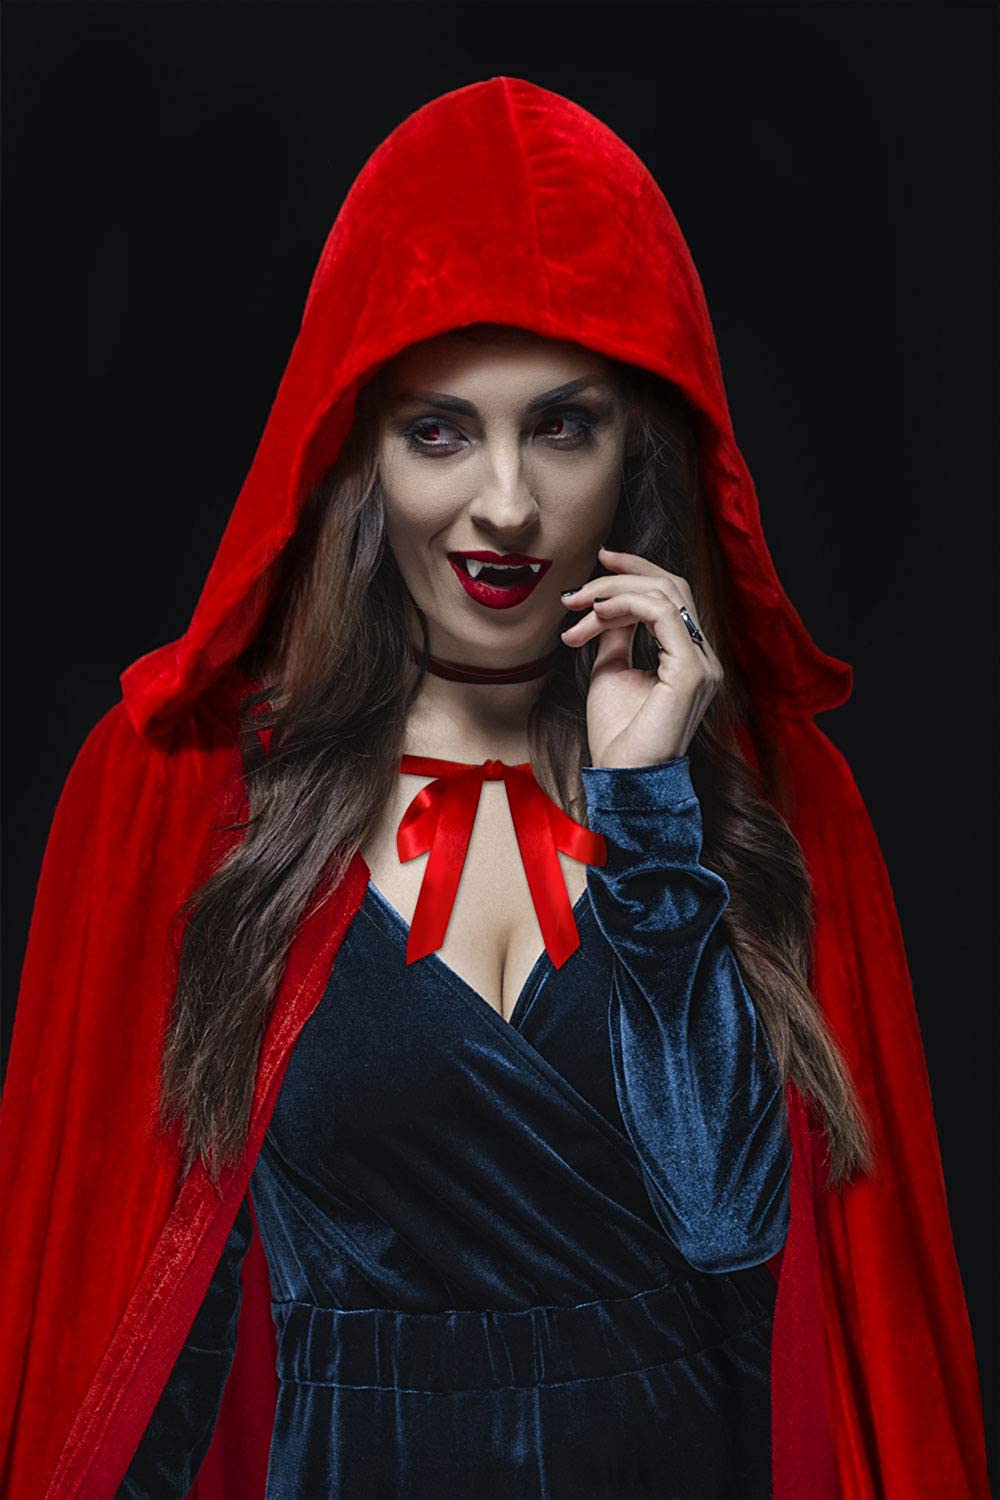 BengPro Adult Women Men Costume Hooded Velvet Cloak Cape Deluxe Full Length Halloween Cosplay Devil Witch Wizard Robe 64inch (A Red): Clothing